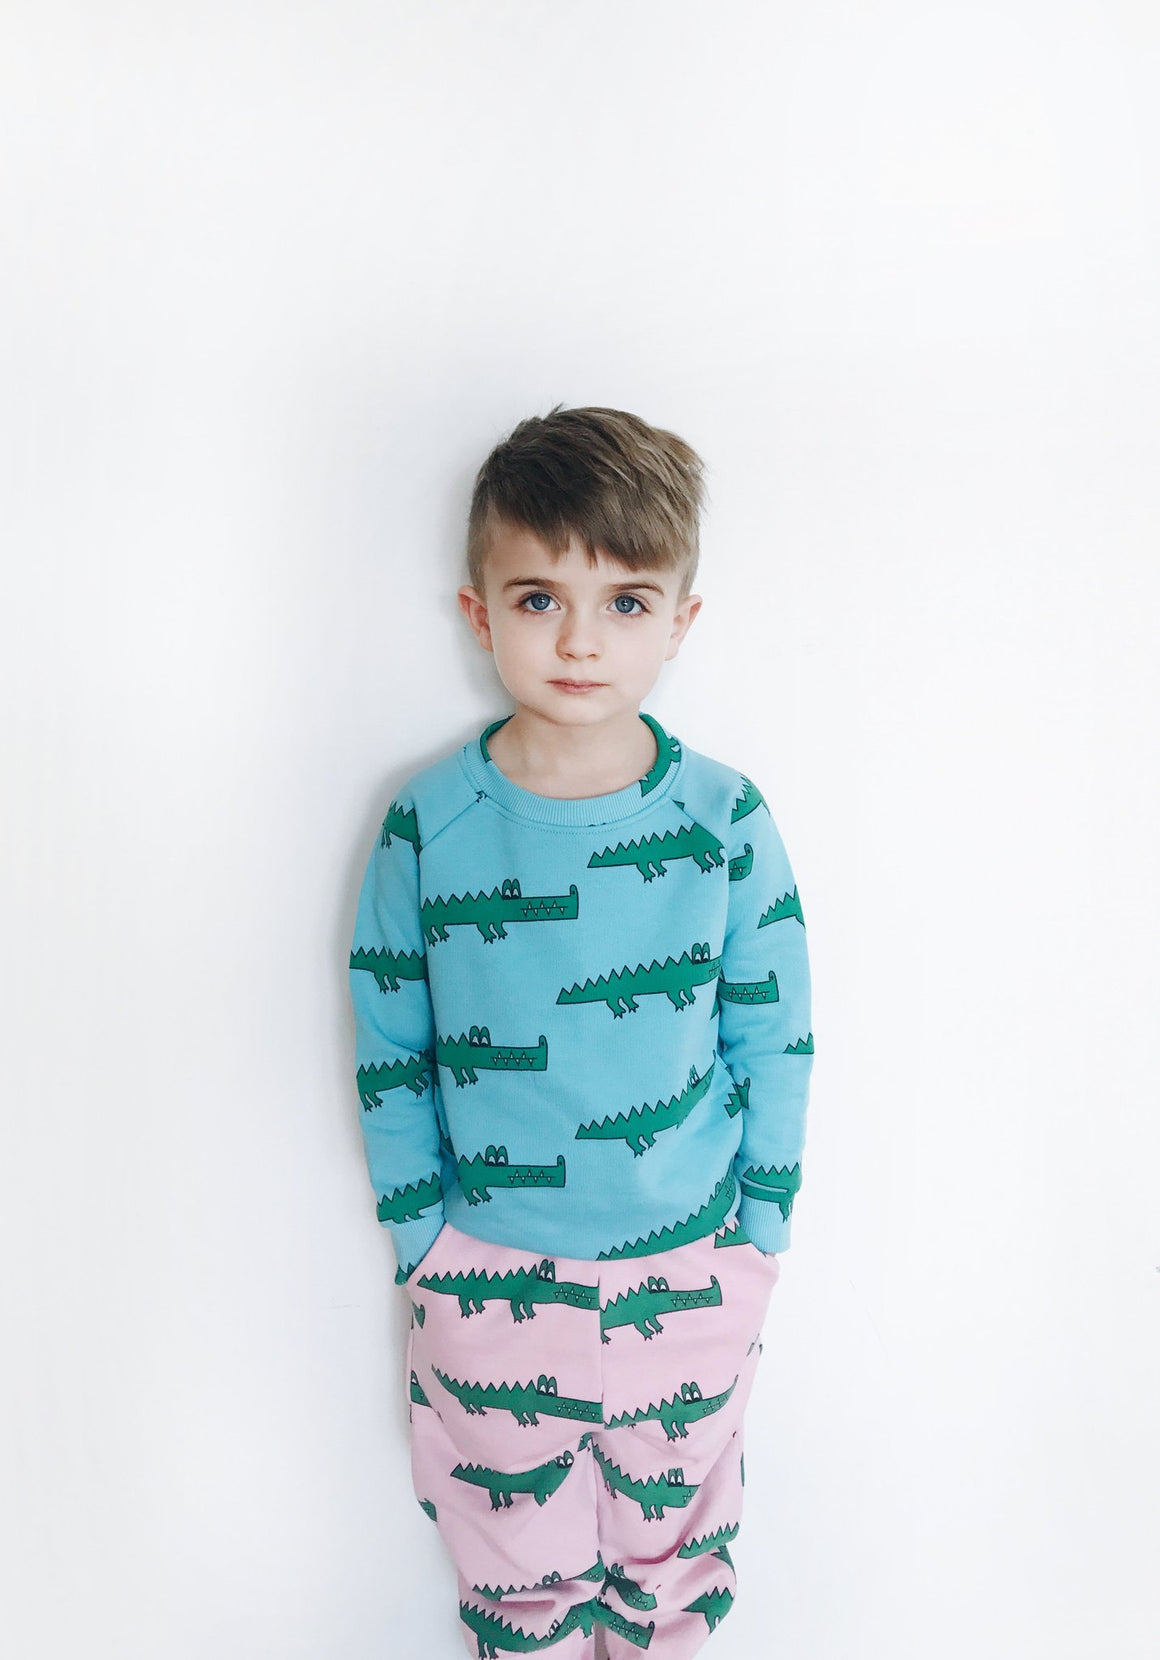 HUGO LOVES TIKI - 80's Sweat Pants - Pink Crocodile - Last One!! Size: 4T